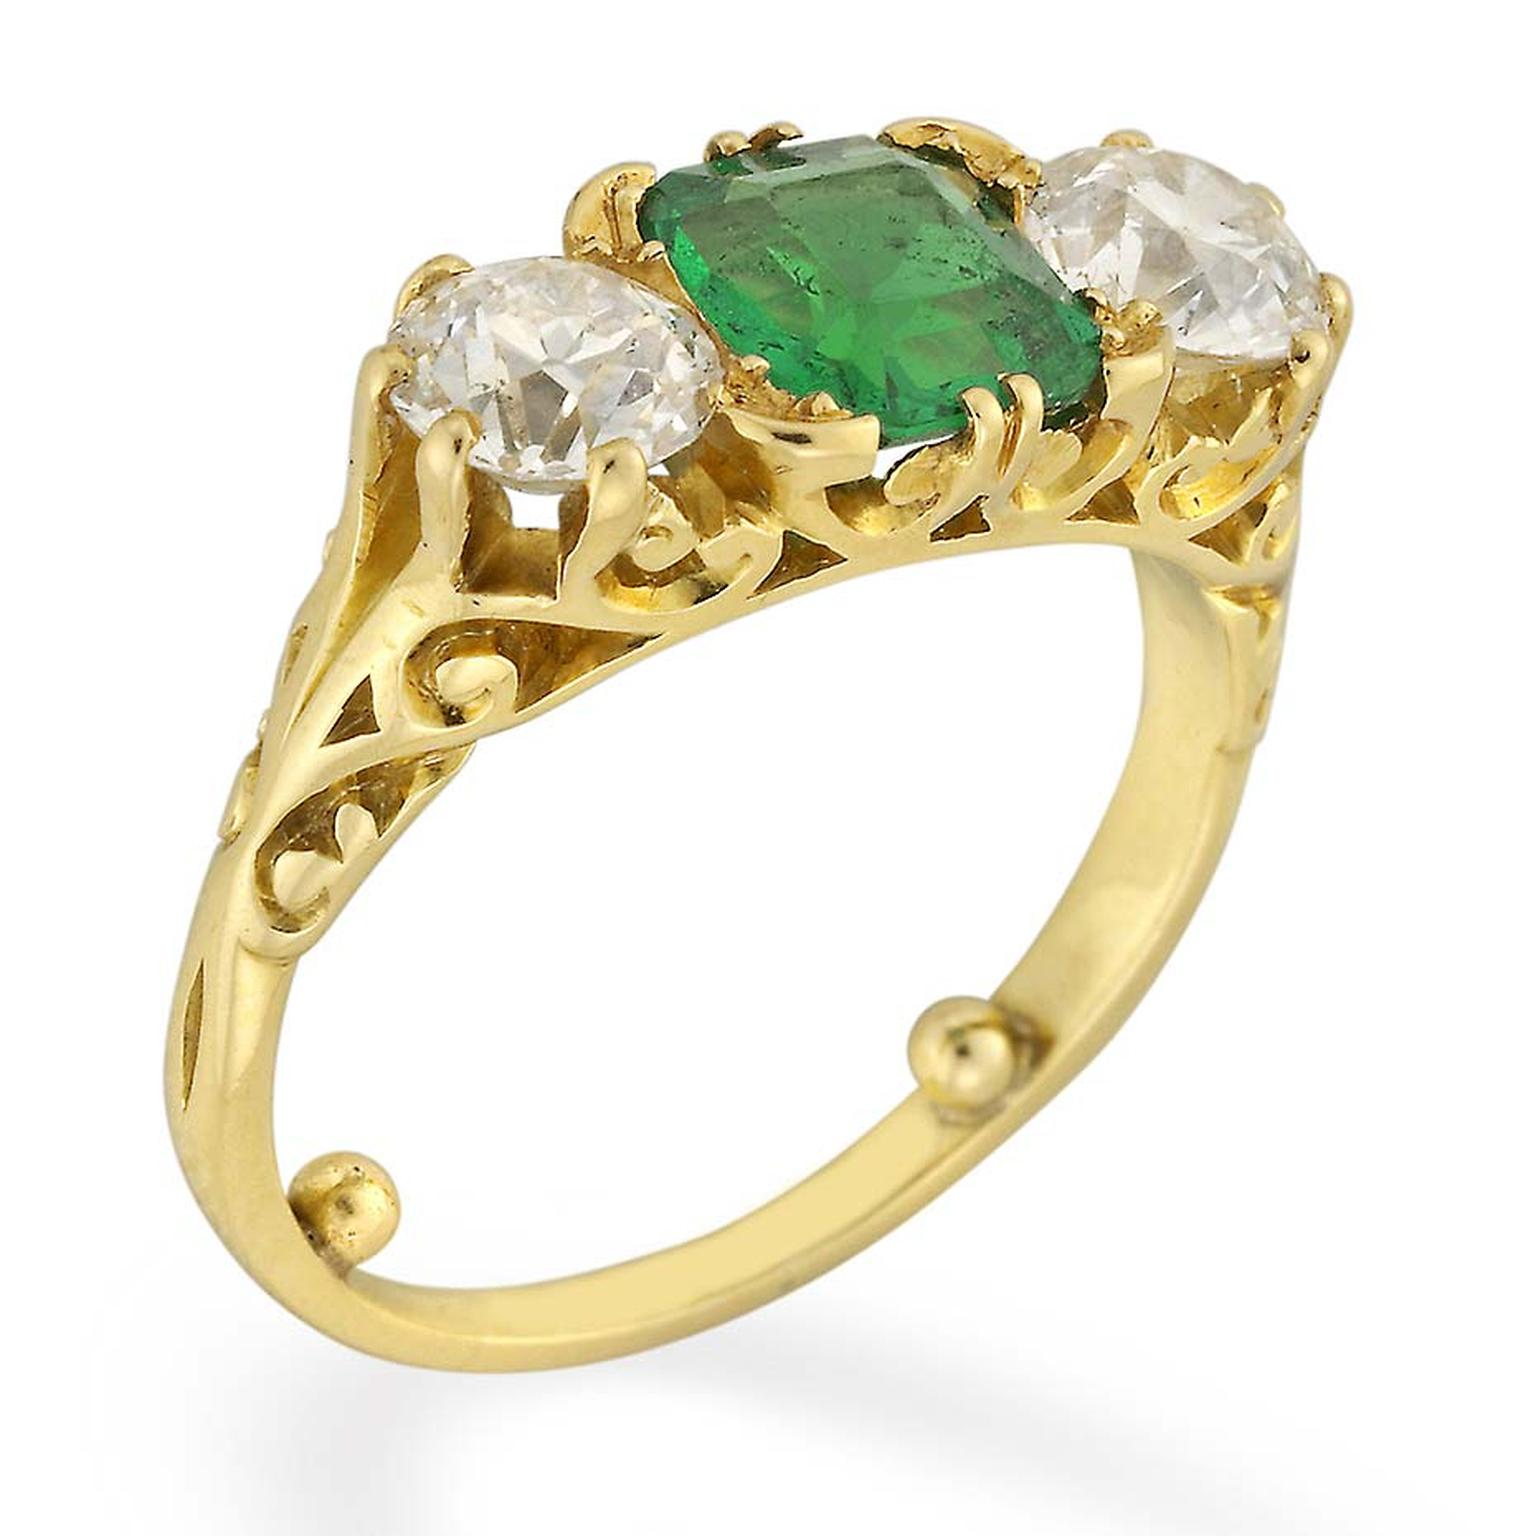 A side view of the Bentley & Skinner emerald and diamond Victorian engagement ring, circa 1880.